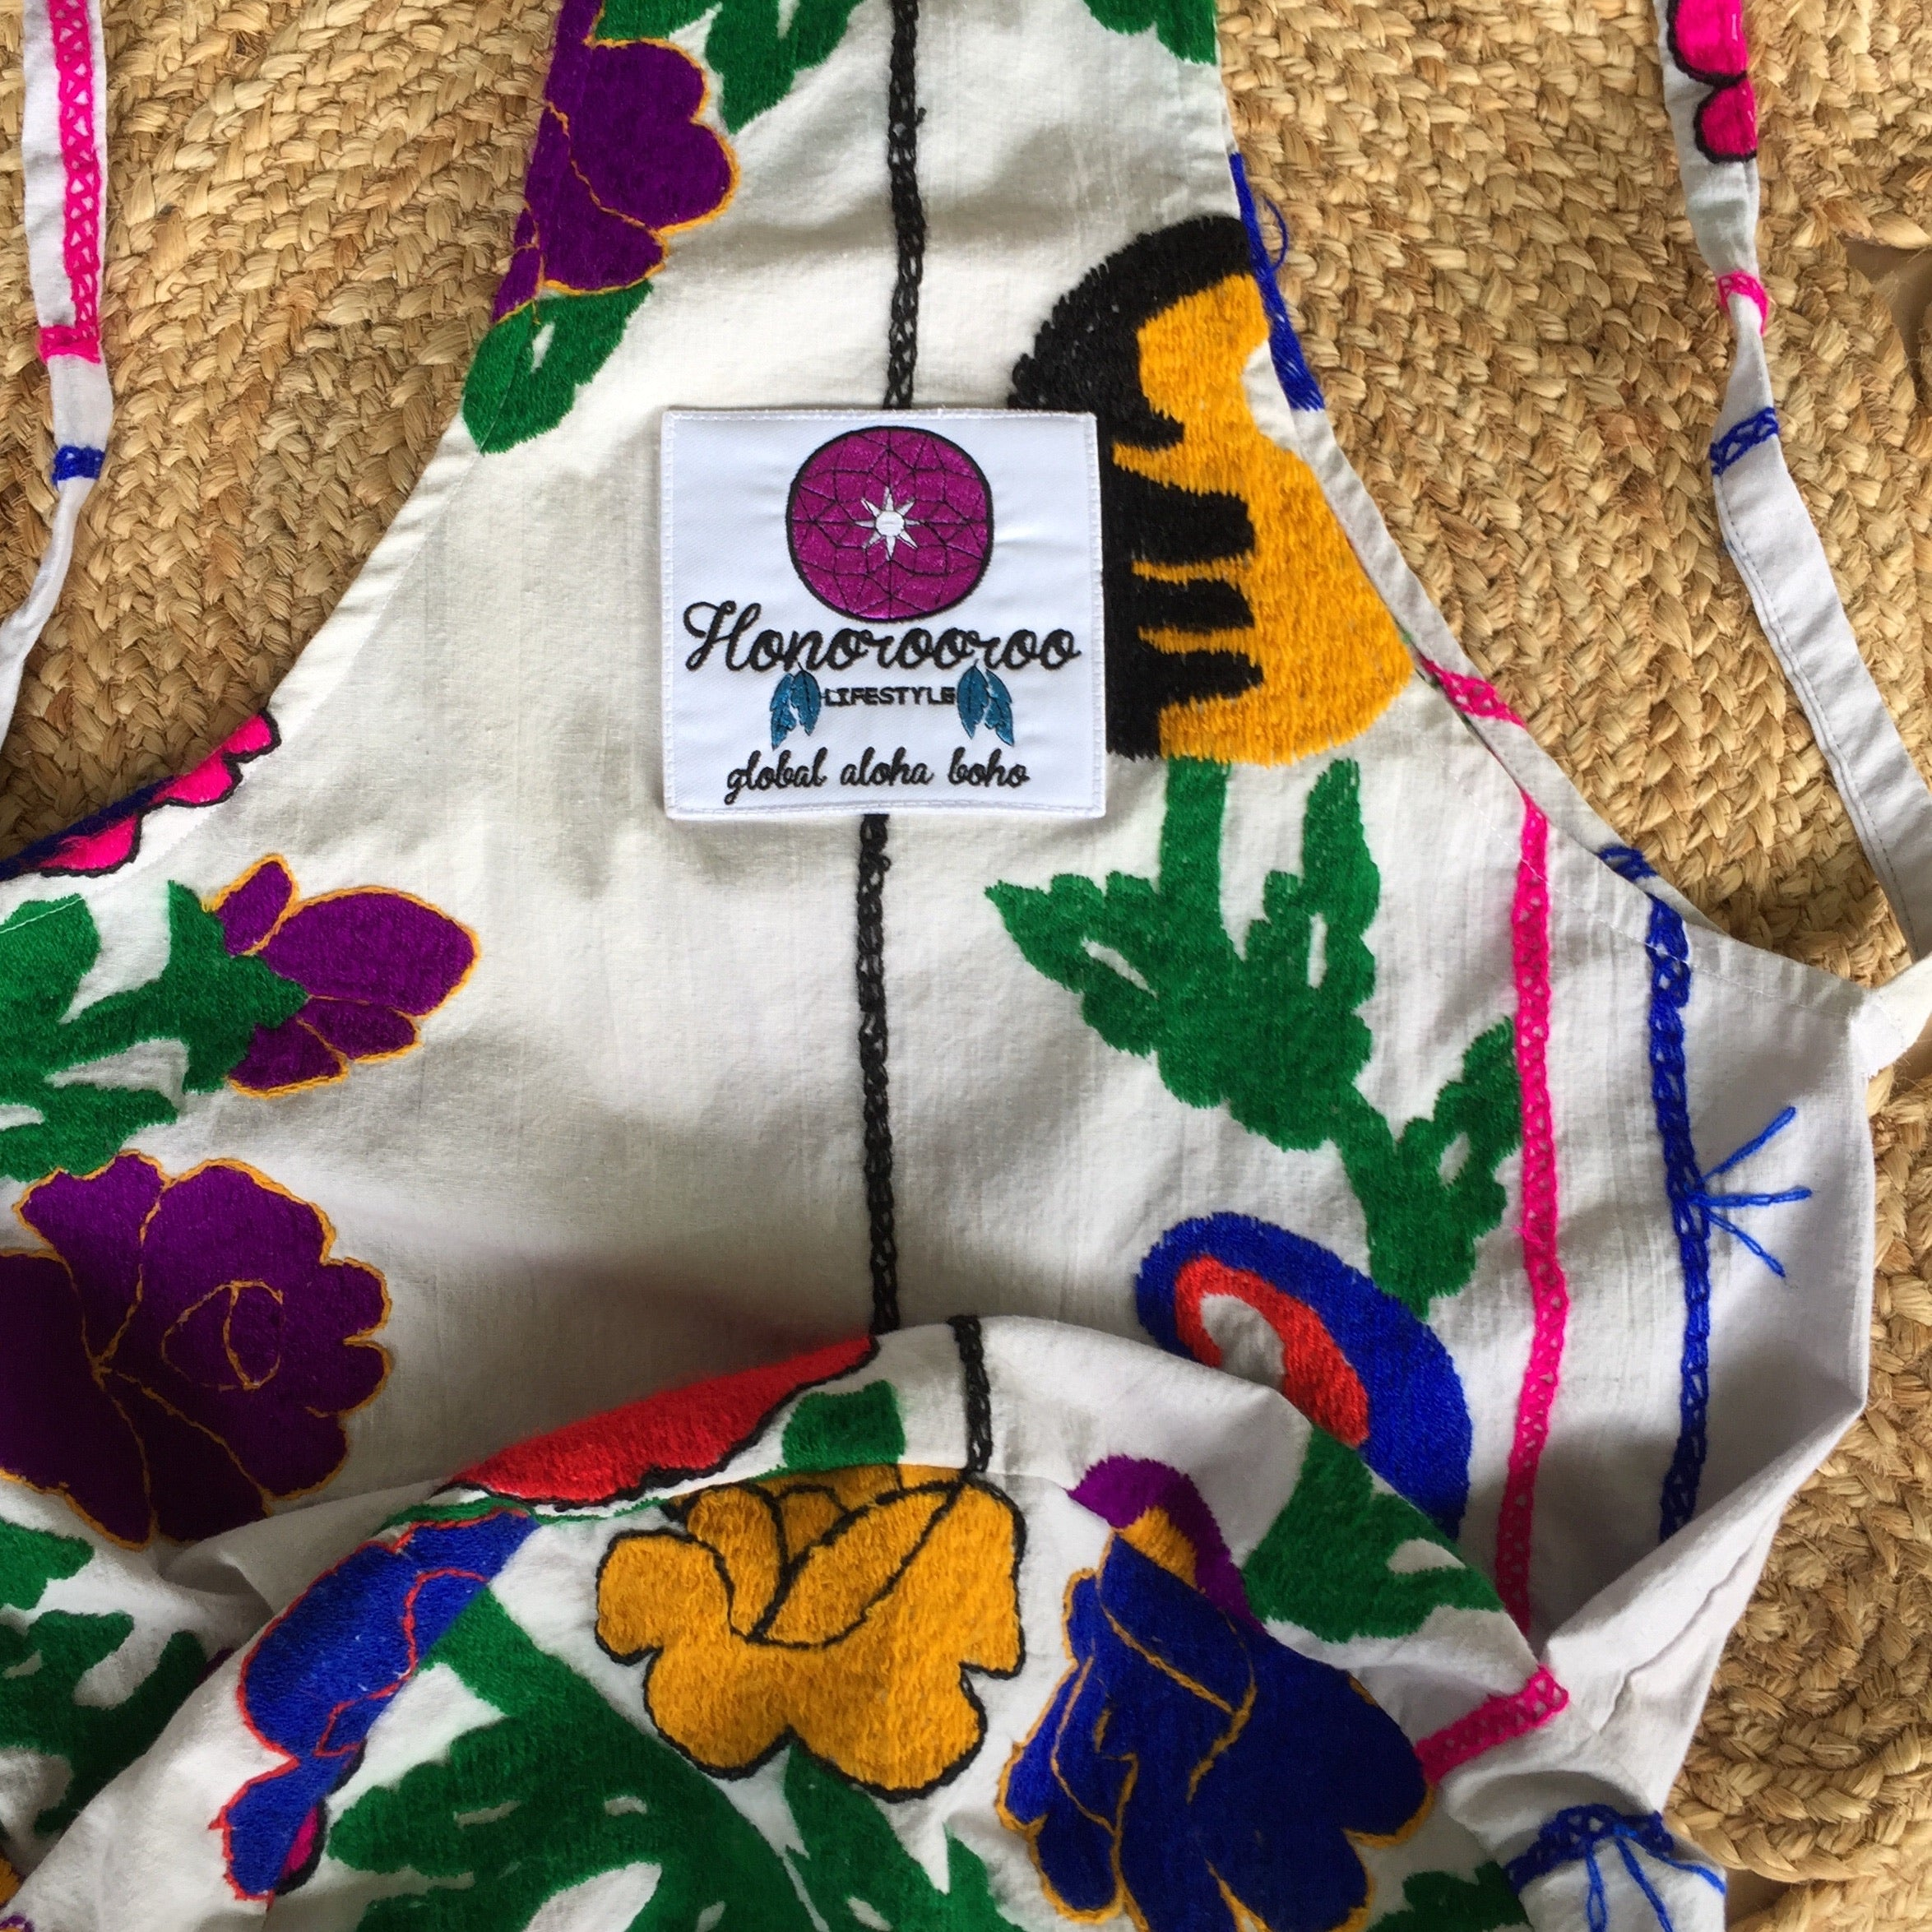 SUZANI SLING BAG|Embroidered Accessories|RAINBOW OAXACA - Honorooroo Lifestyle